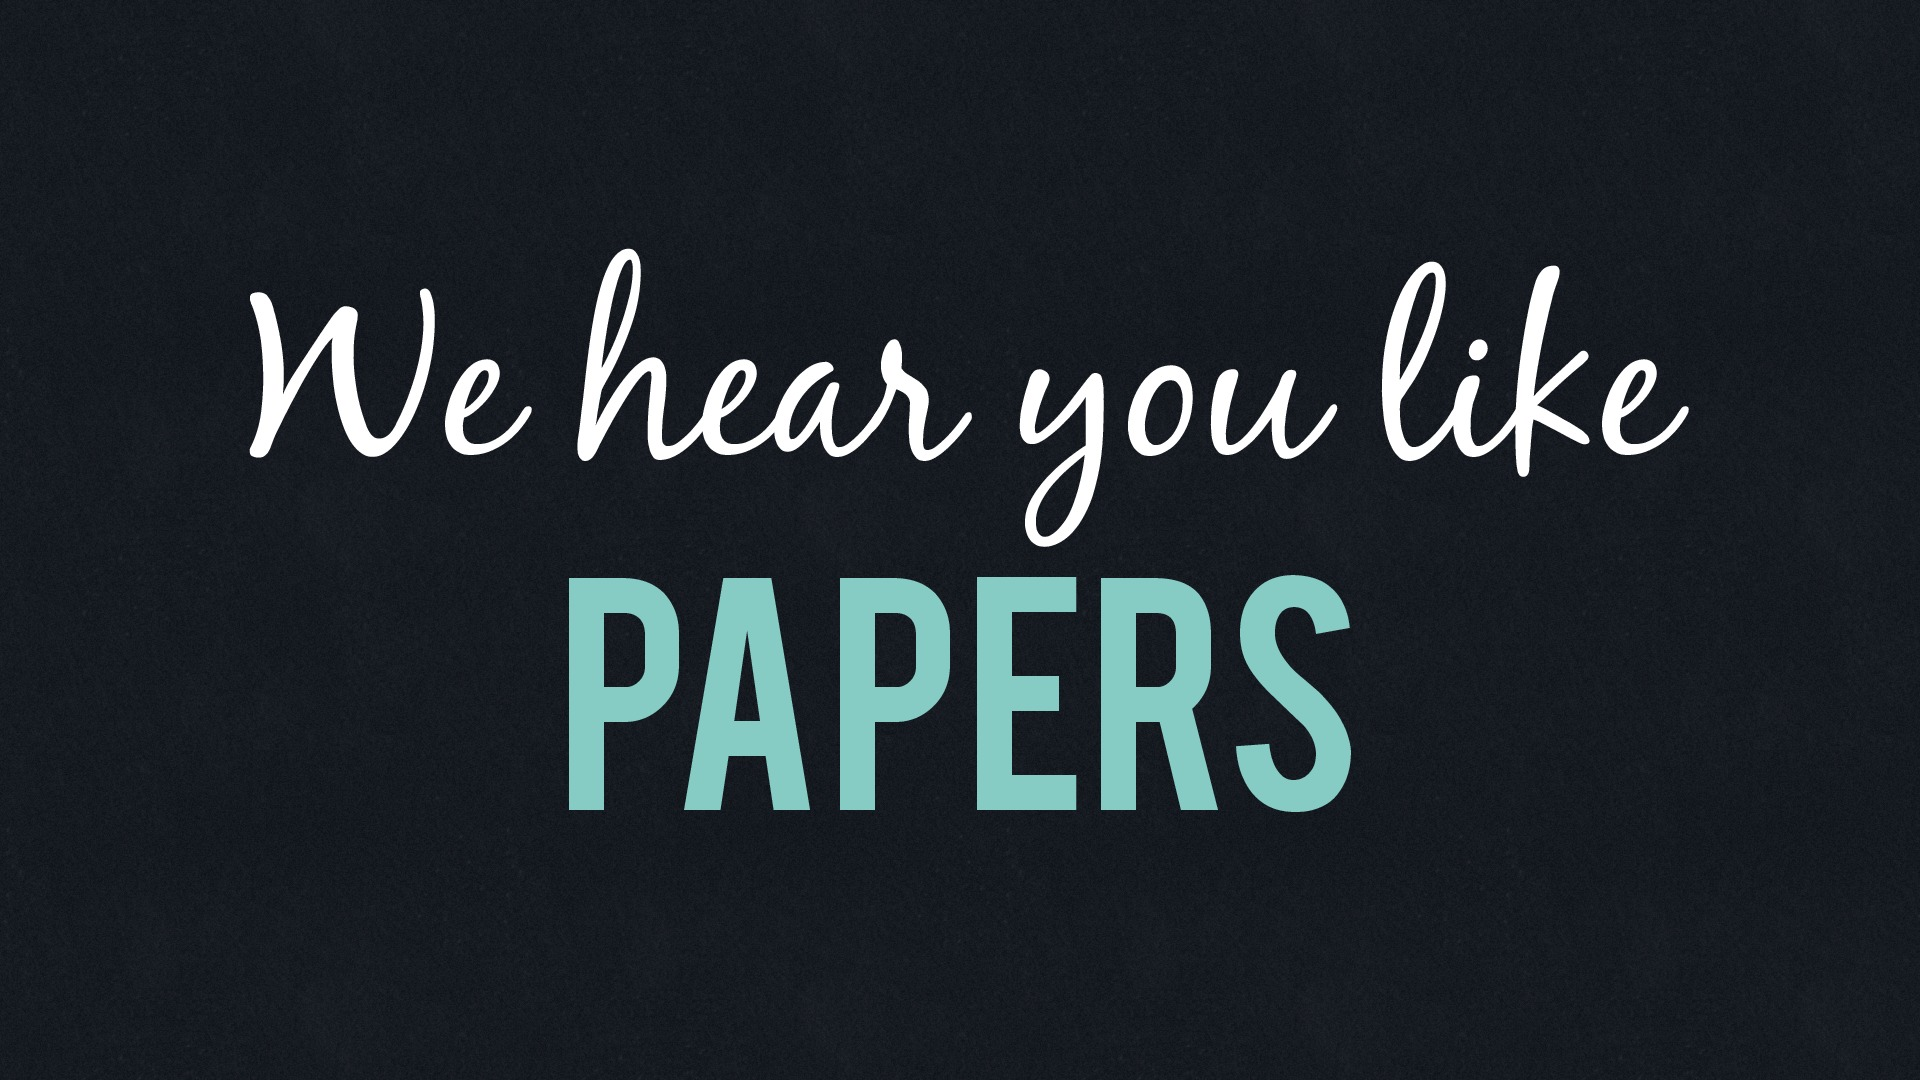 We hear you like papers - QCon Edition